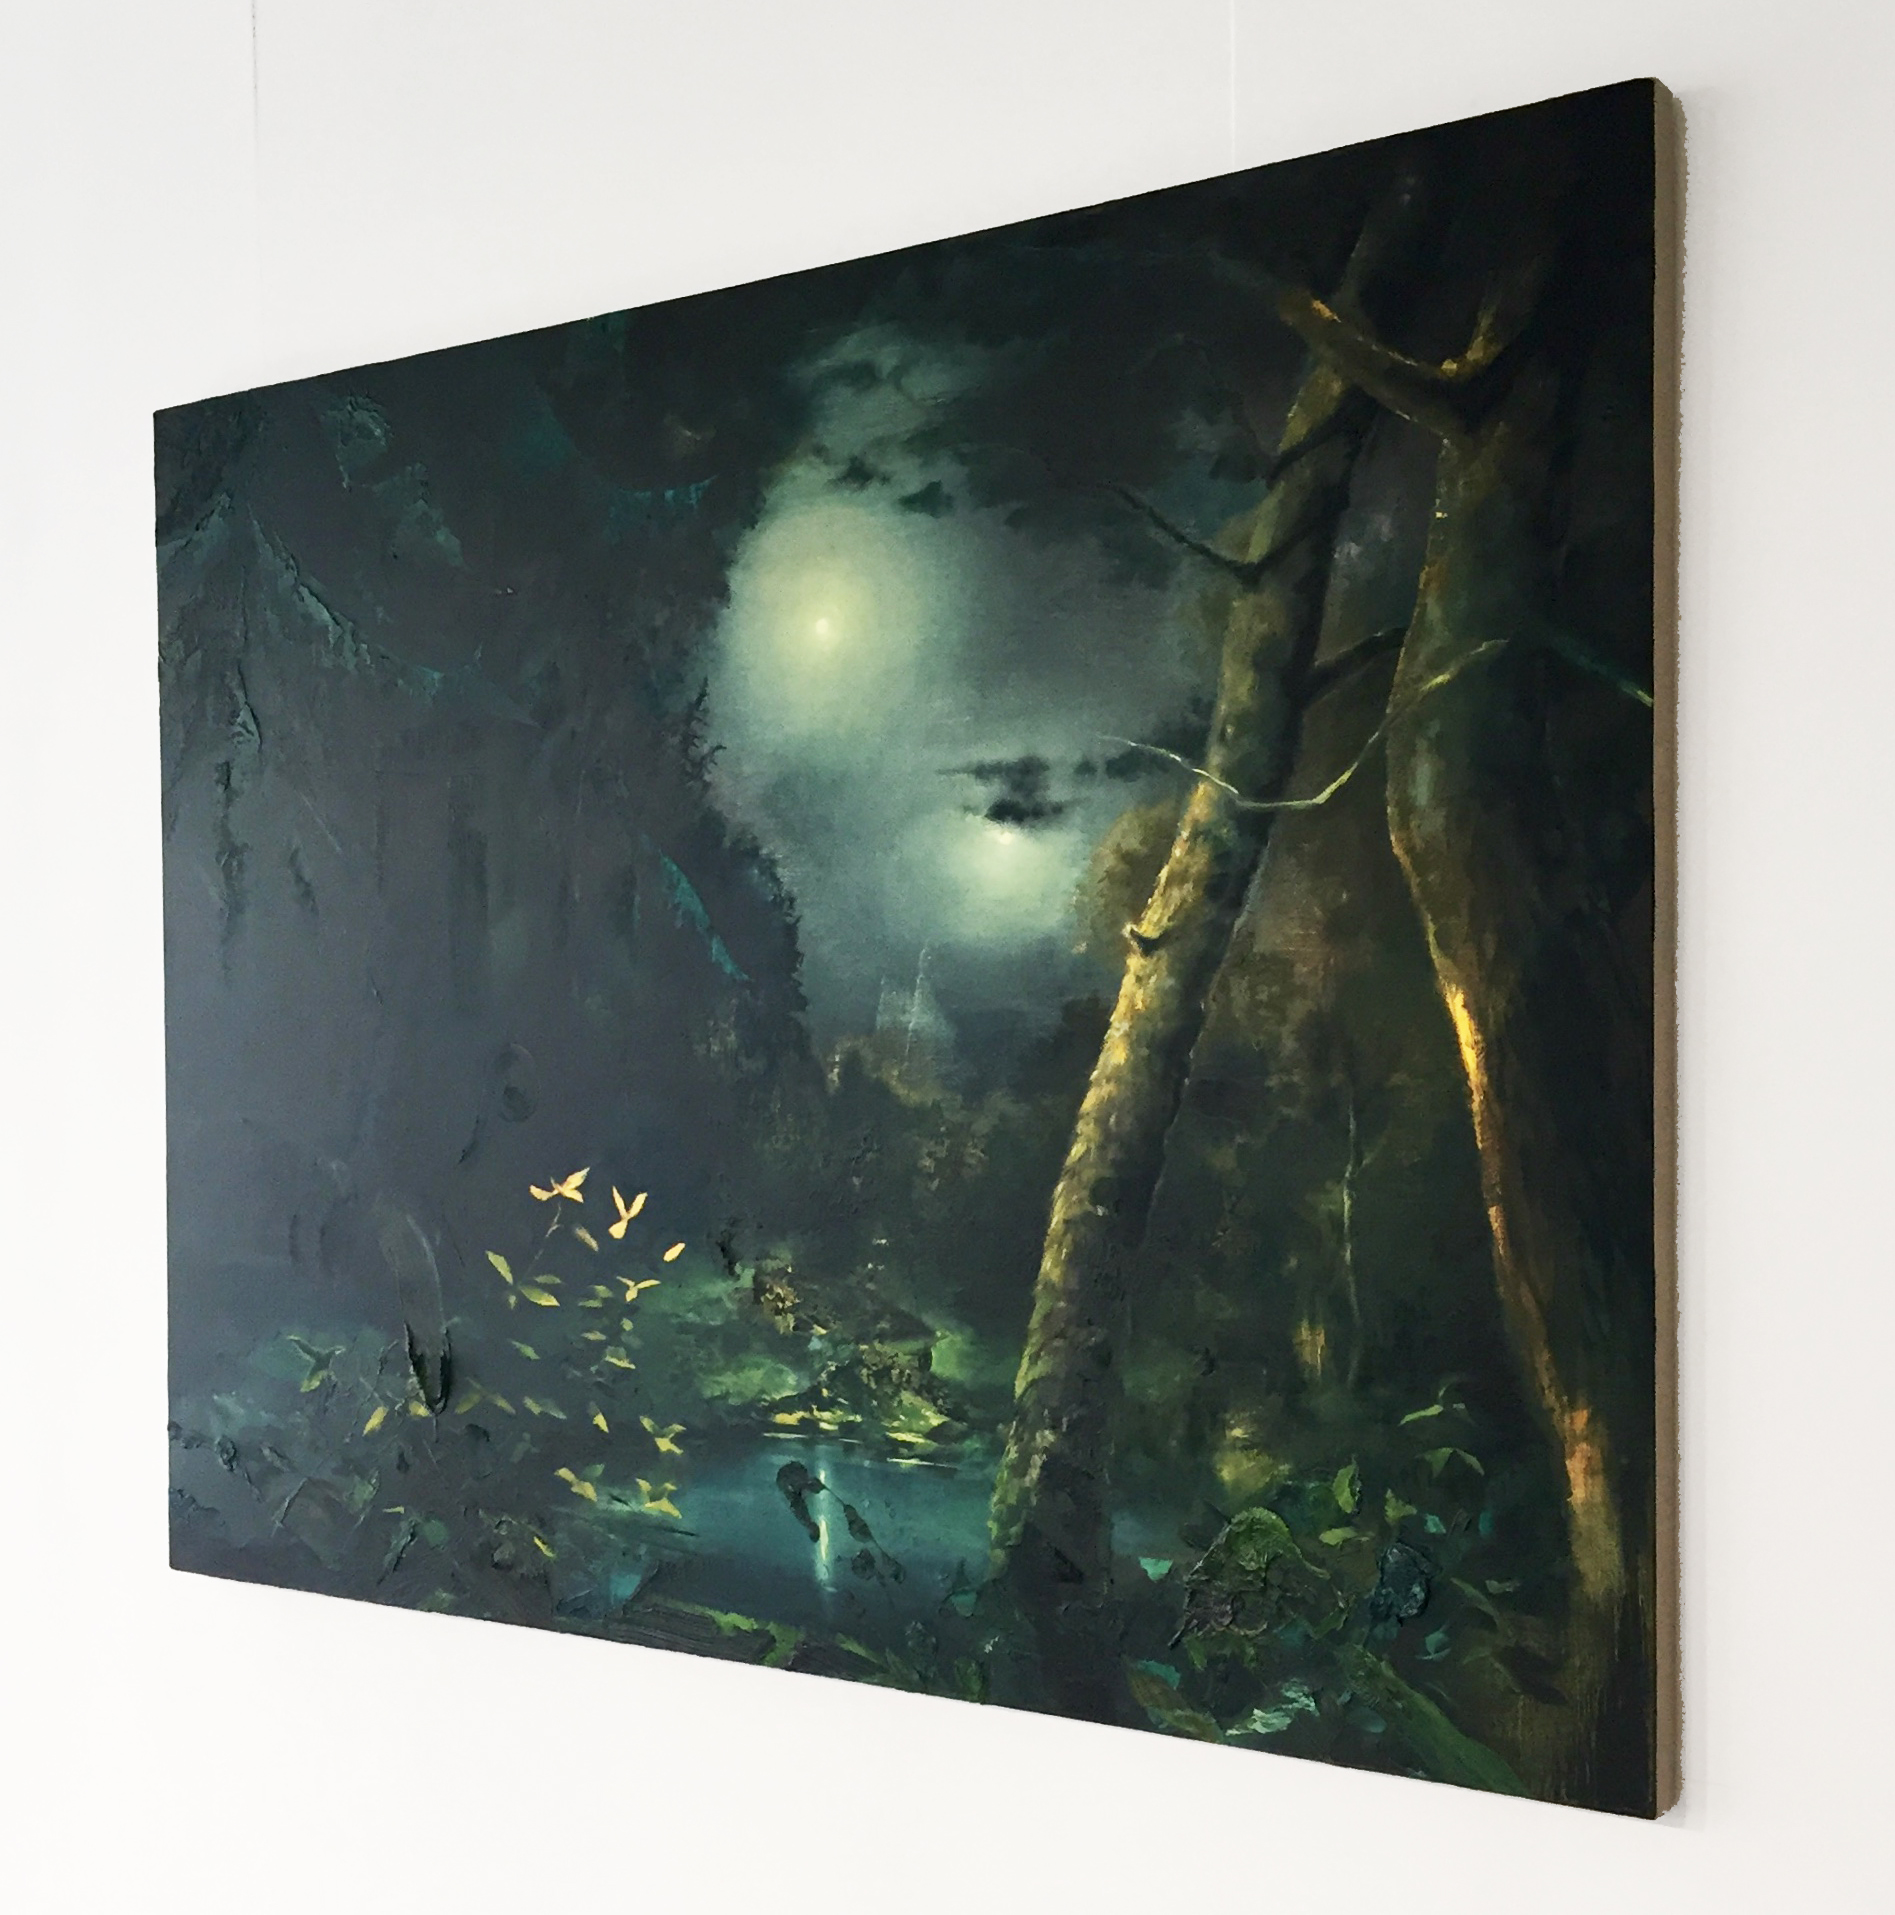 Nocturne/Doublemoon (1729) , oil on canvas, 48 x 68 in. installed in the Abigail Ogilvy Gallery.